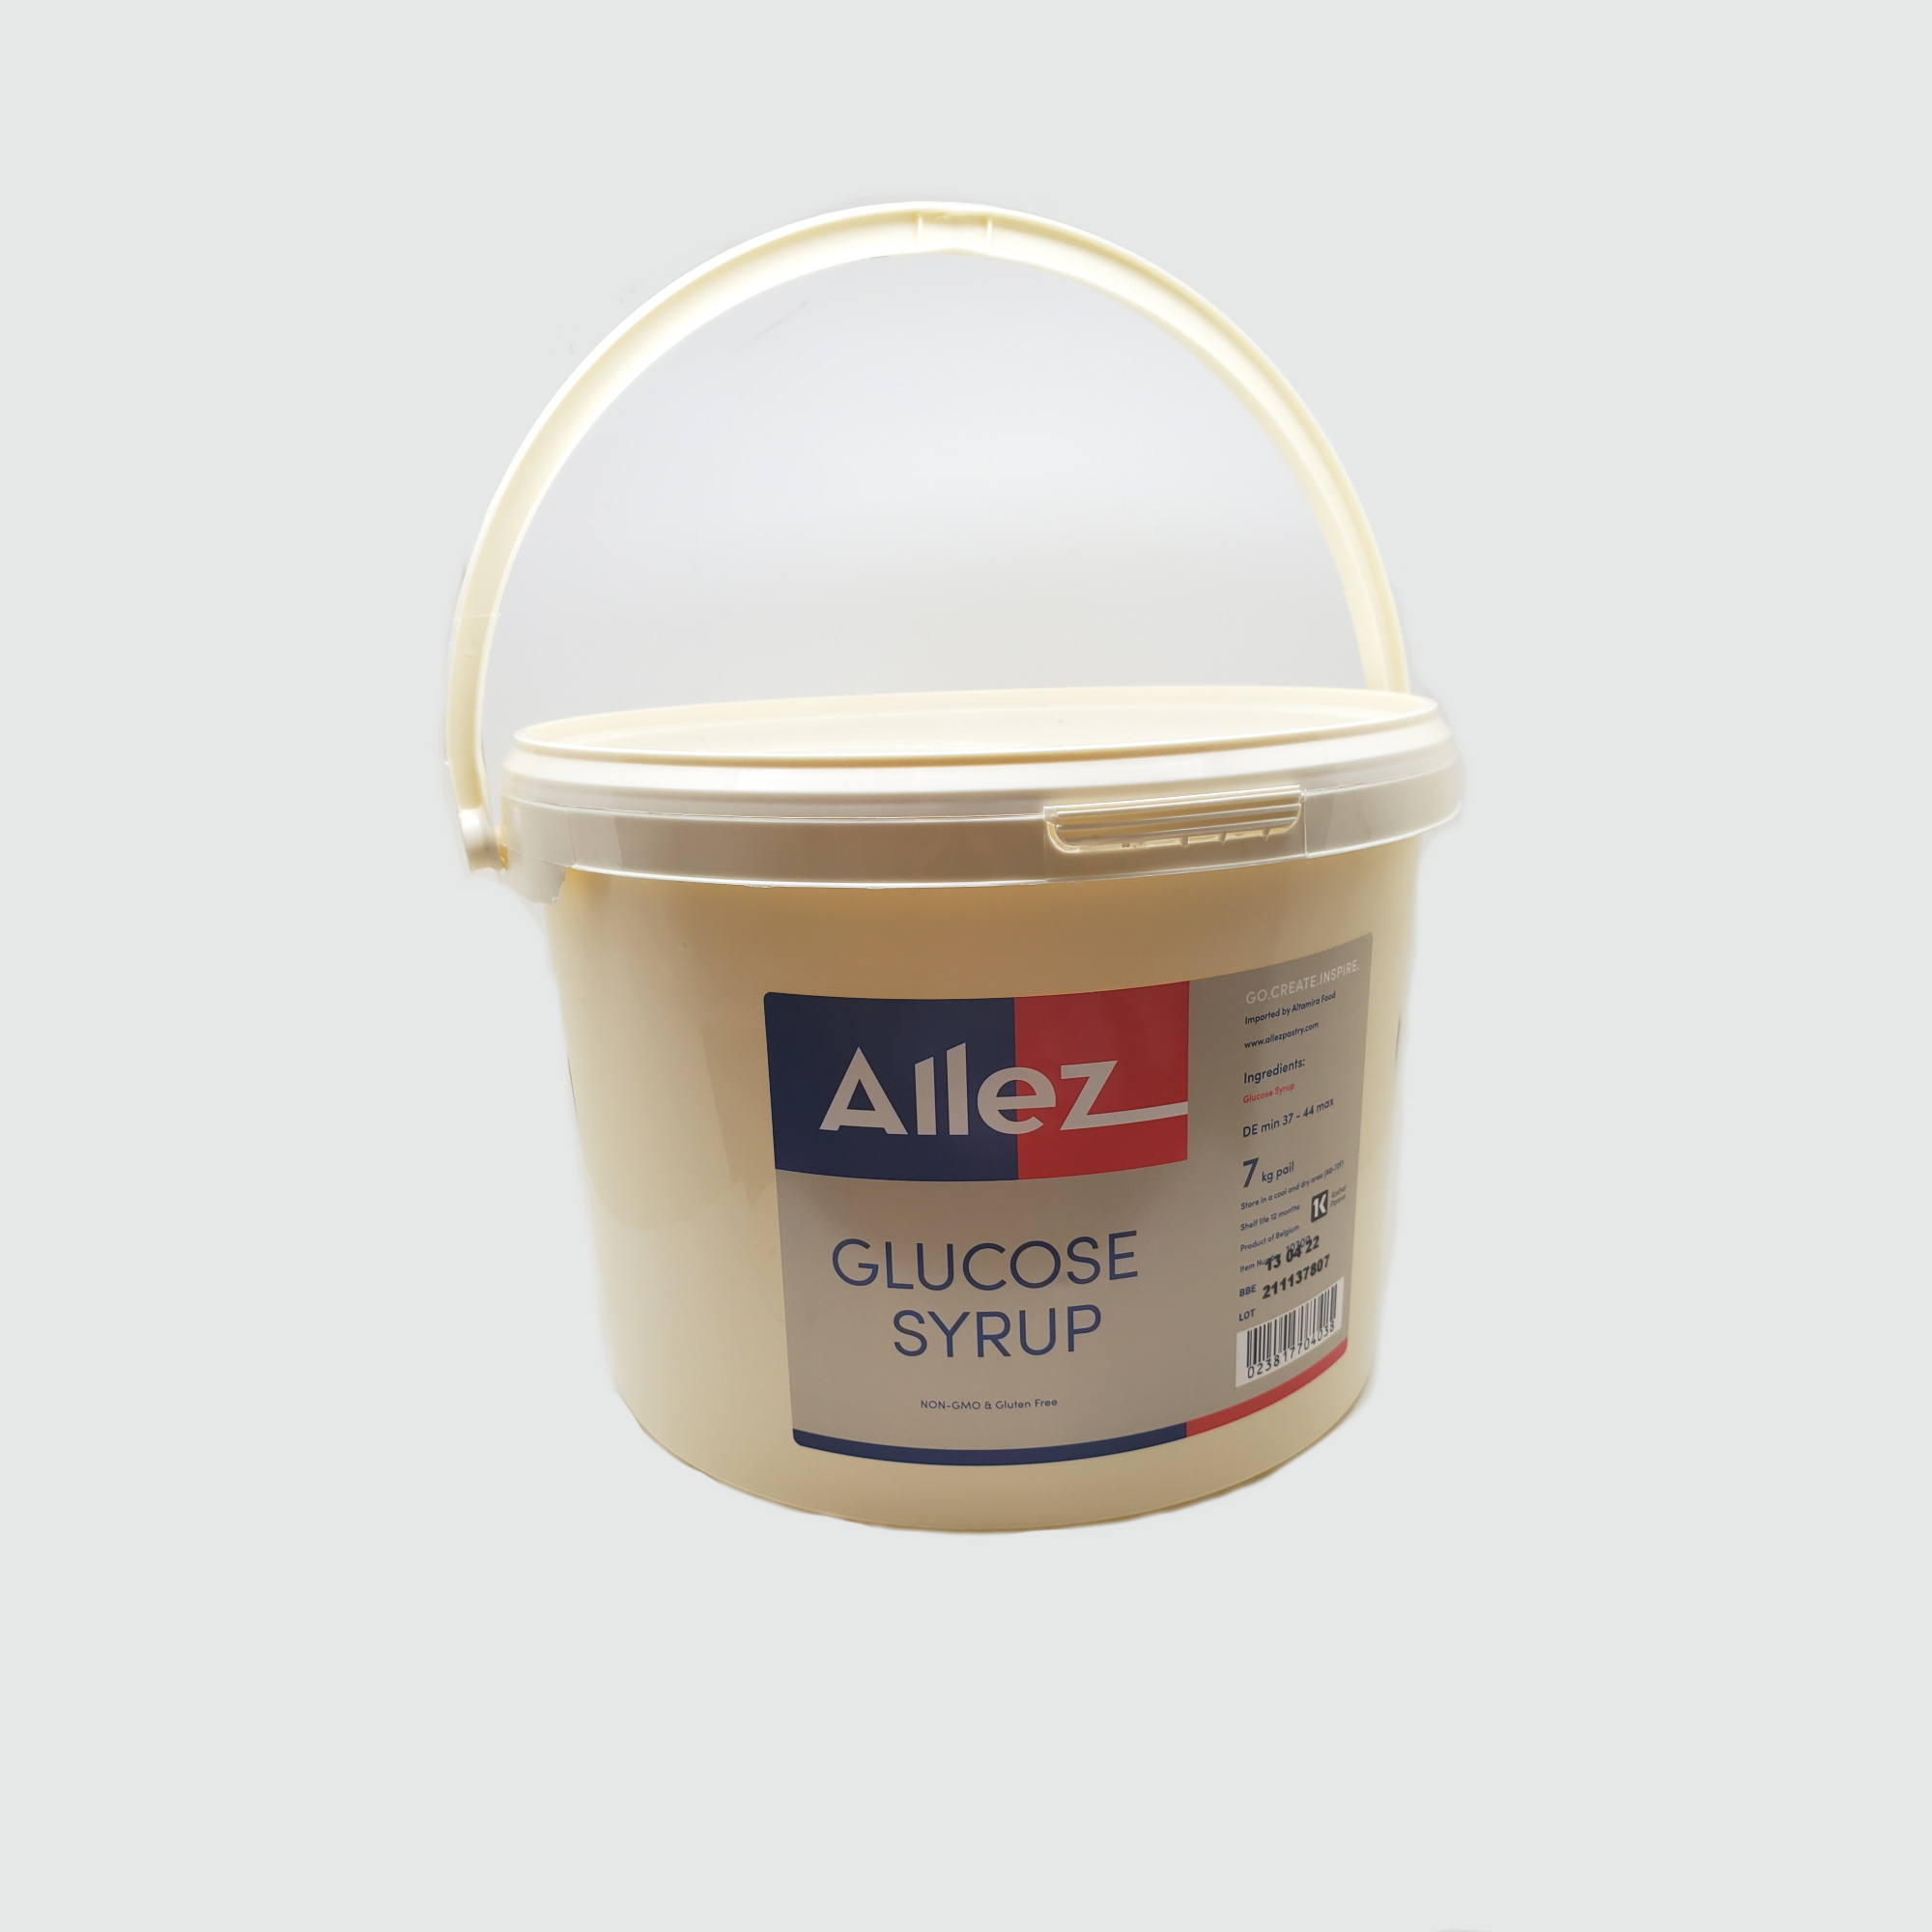 Allez Glucose Syrup Container s